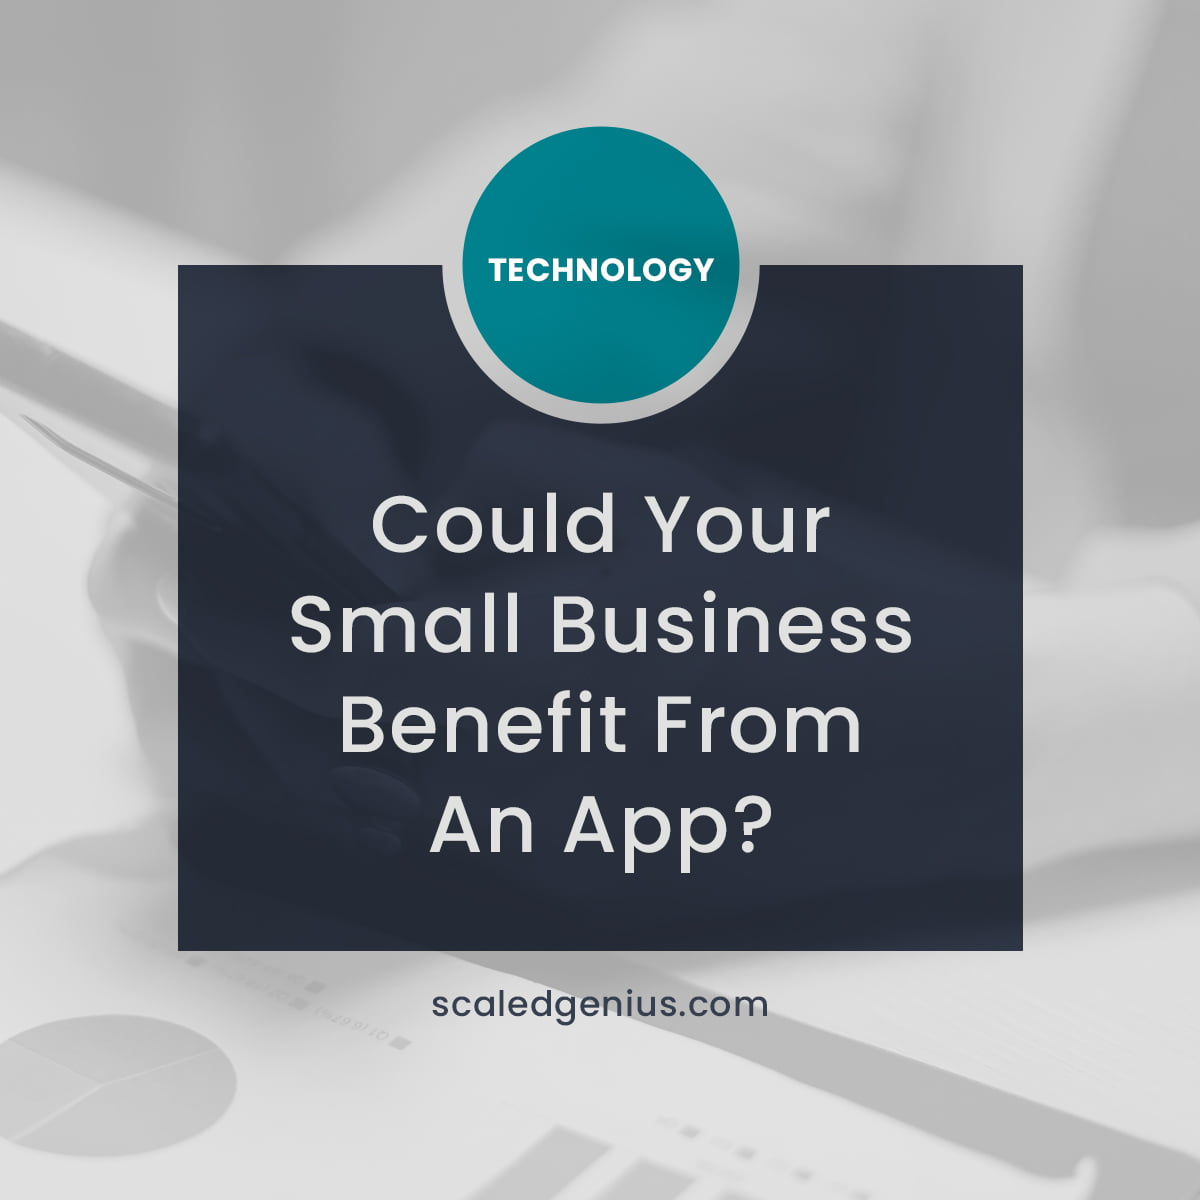 Could Your Small Business Benefit From An App?